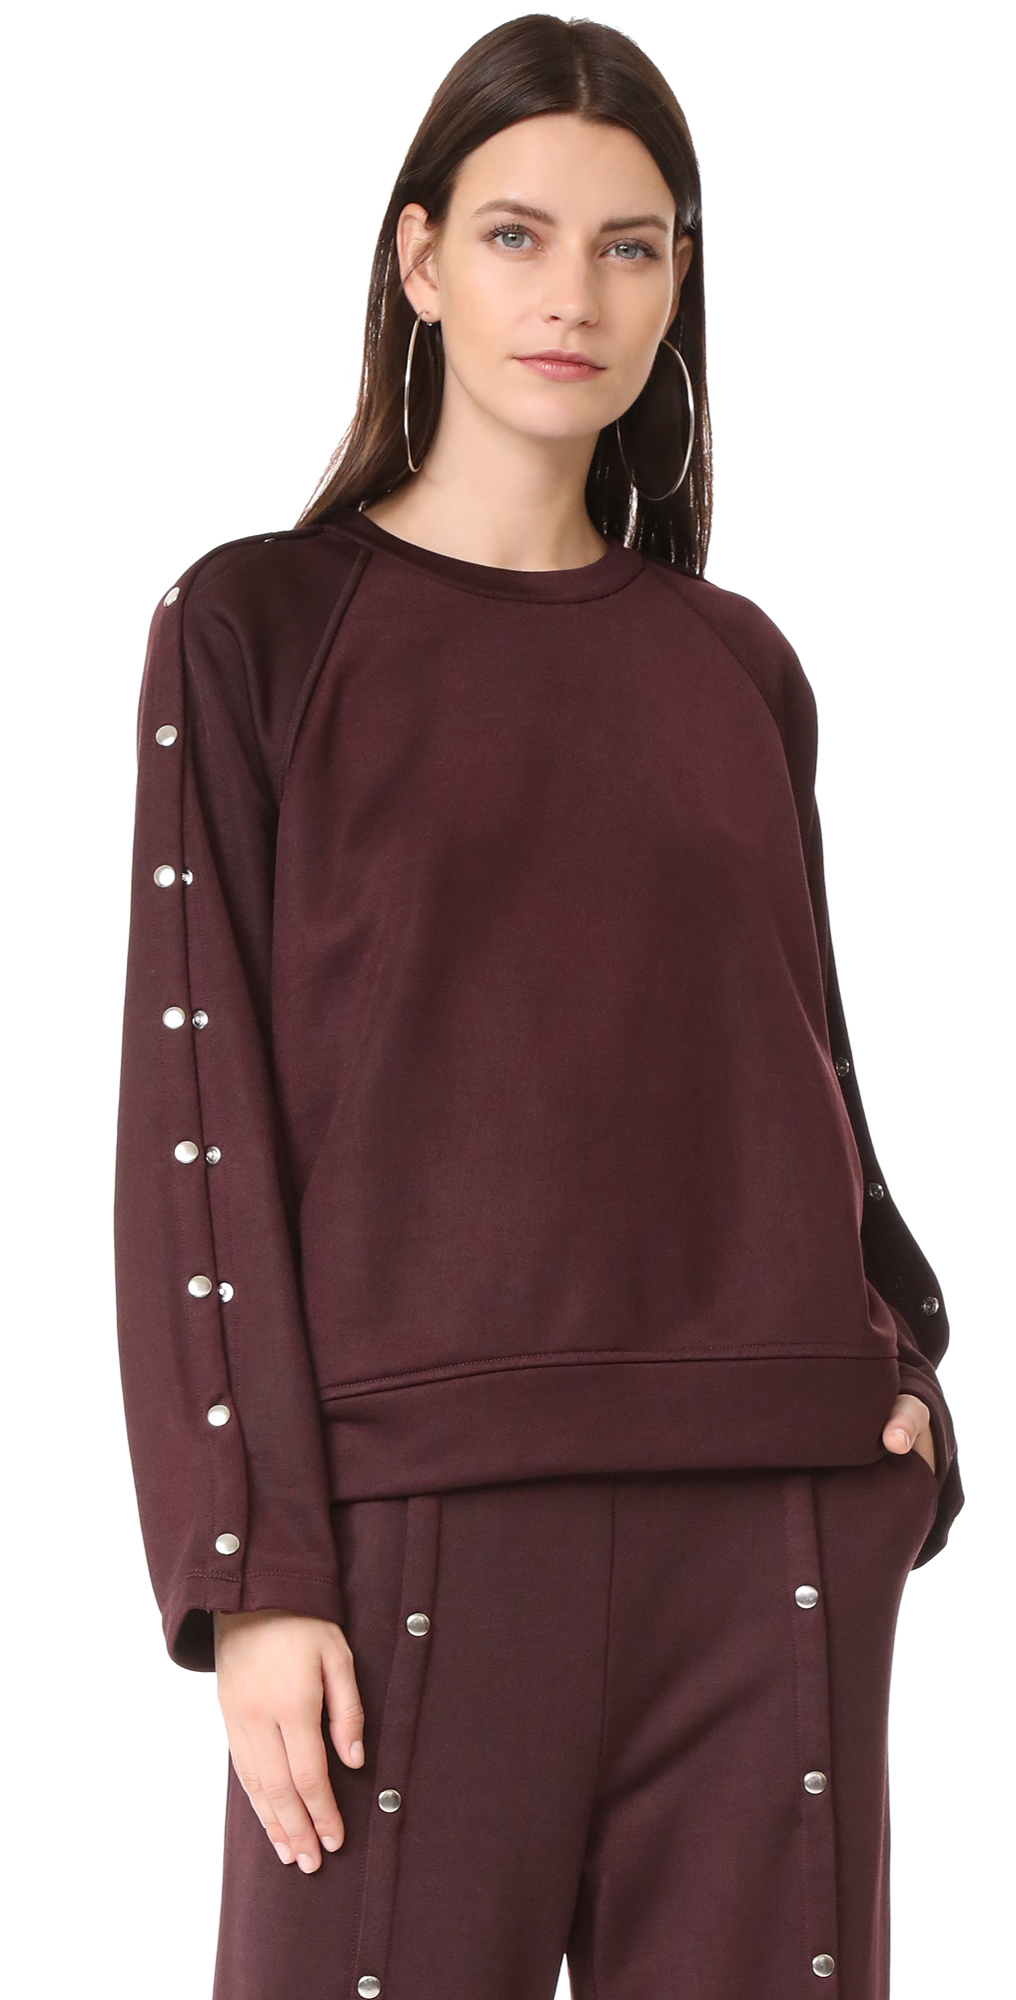 Sweatshirt with Snaps T by Alexander Wang